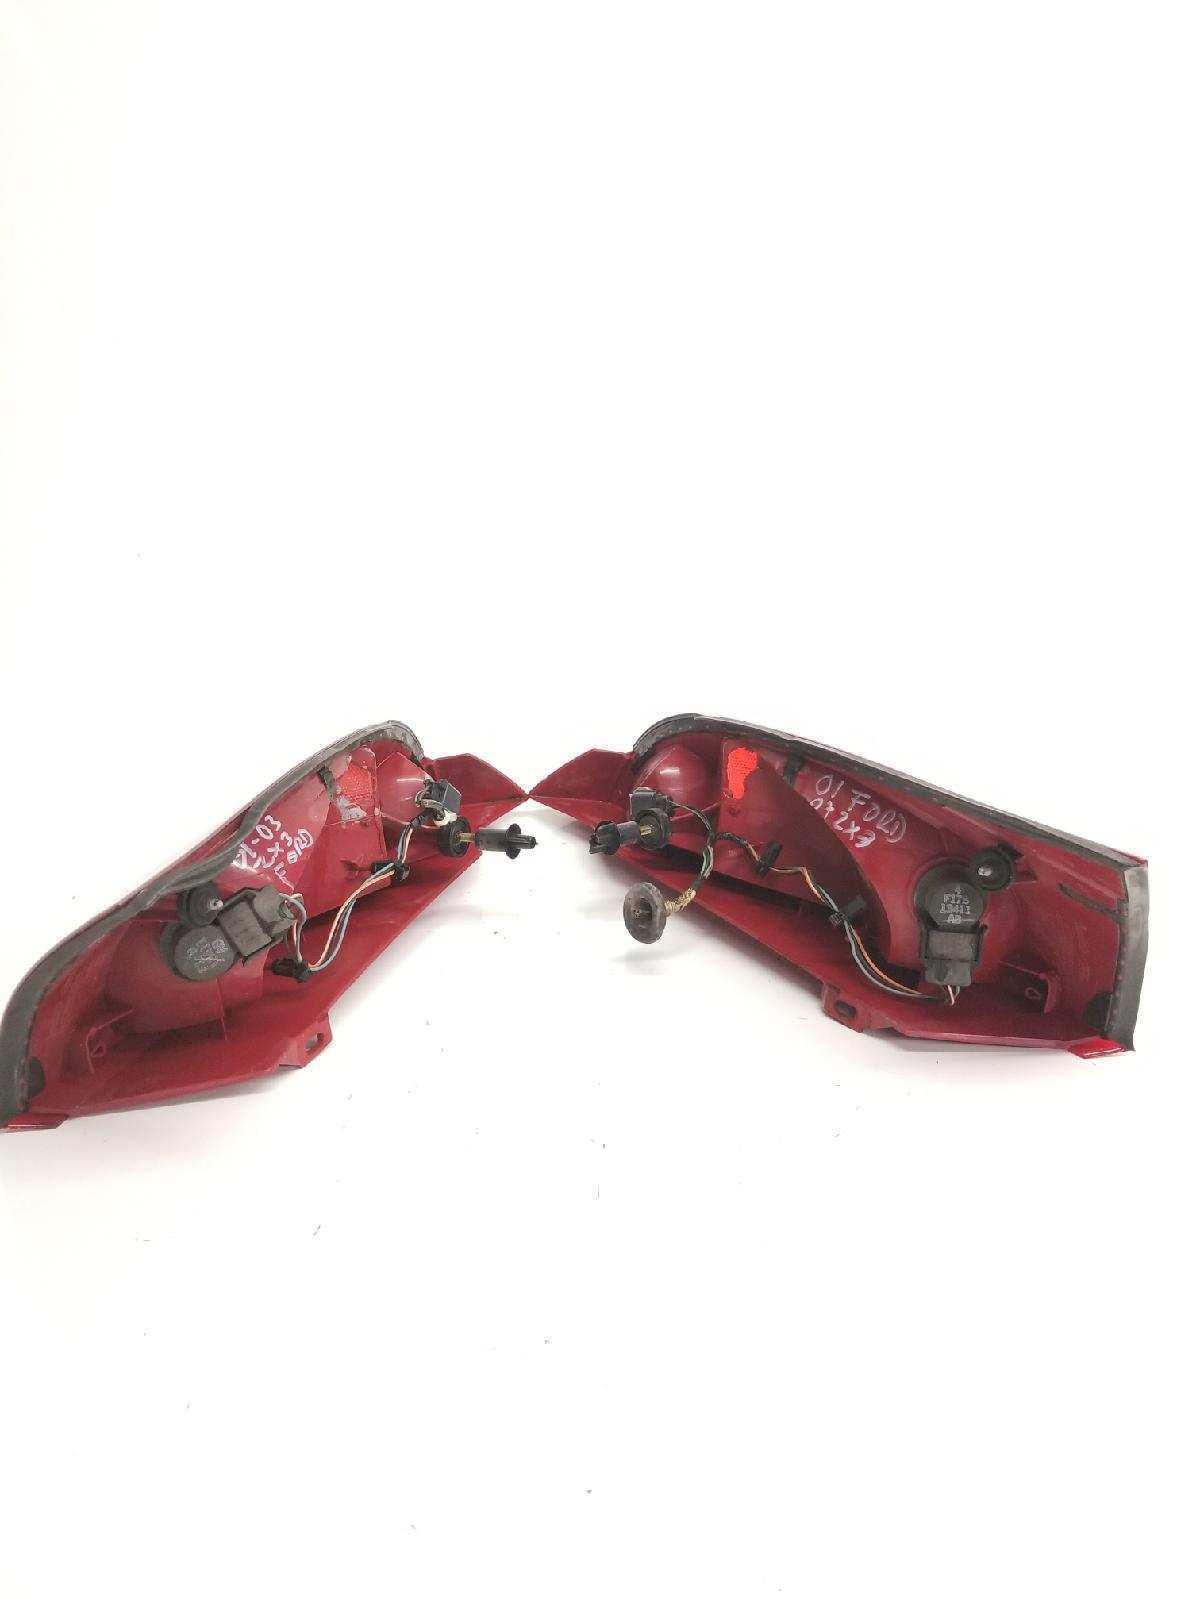 01 02 03 04 05 06 07 FORD FOCUS ZX3 TAIL LIGHT BRAKE LH RH FACTORY OEM USED PAIR Does not apply